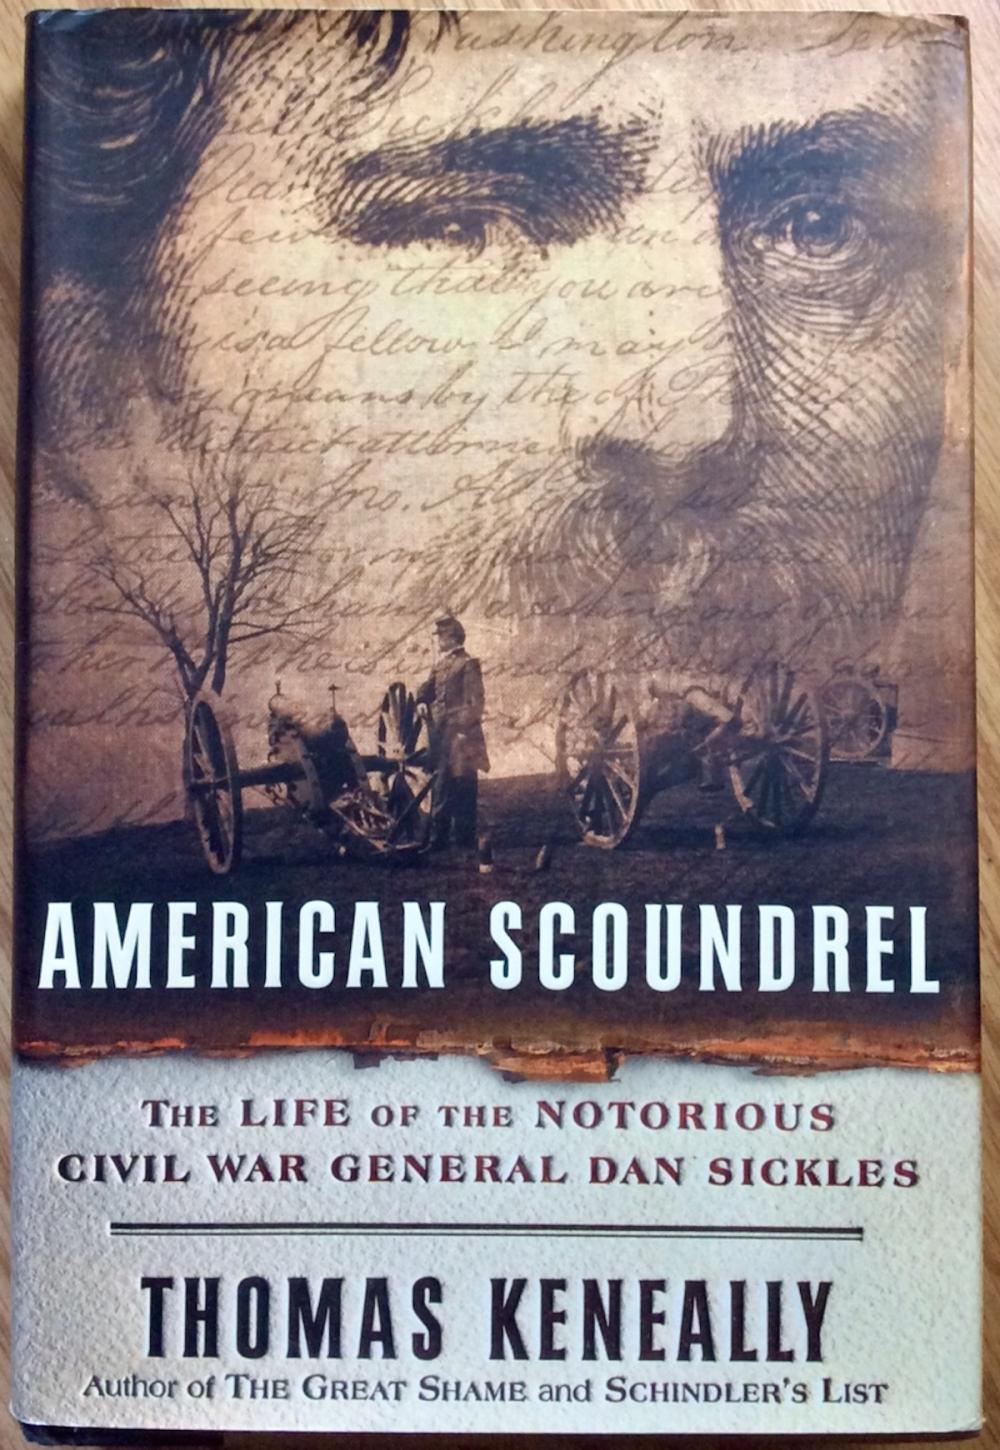 """American Scoundrel"" by Thomas Keneally Collectible 2002 Hardcover Biography Of Notorious American Civil War General Dan Sickles 1st Edition 1st Printing In DJ"